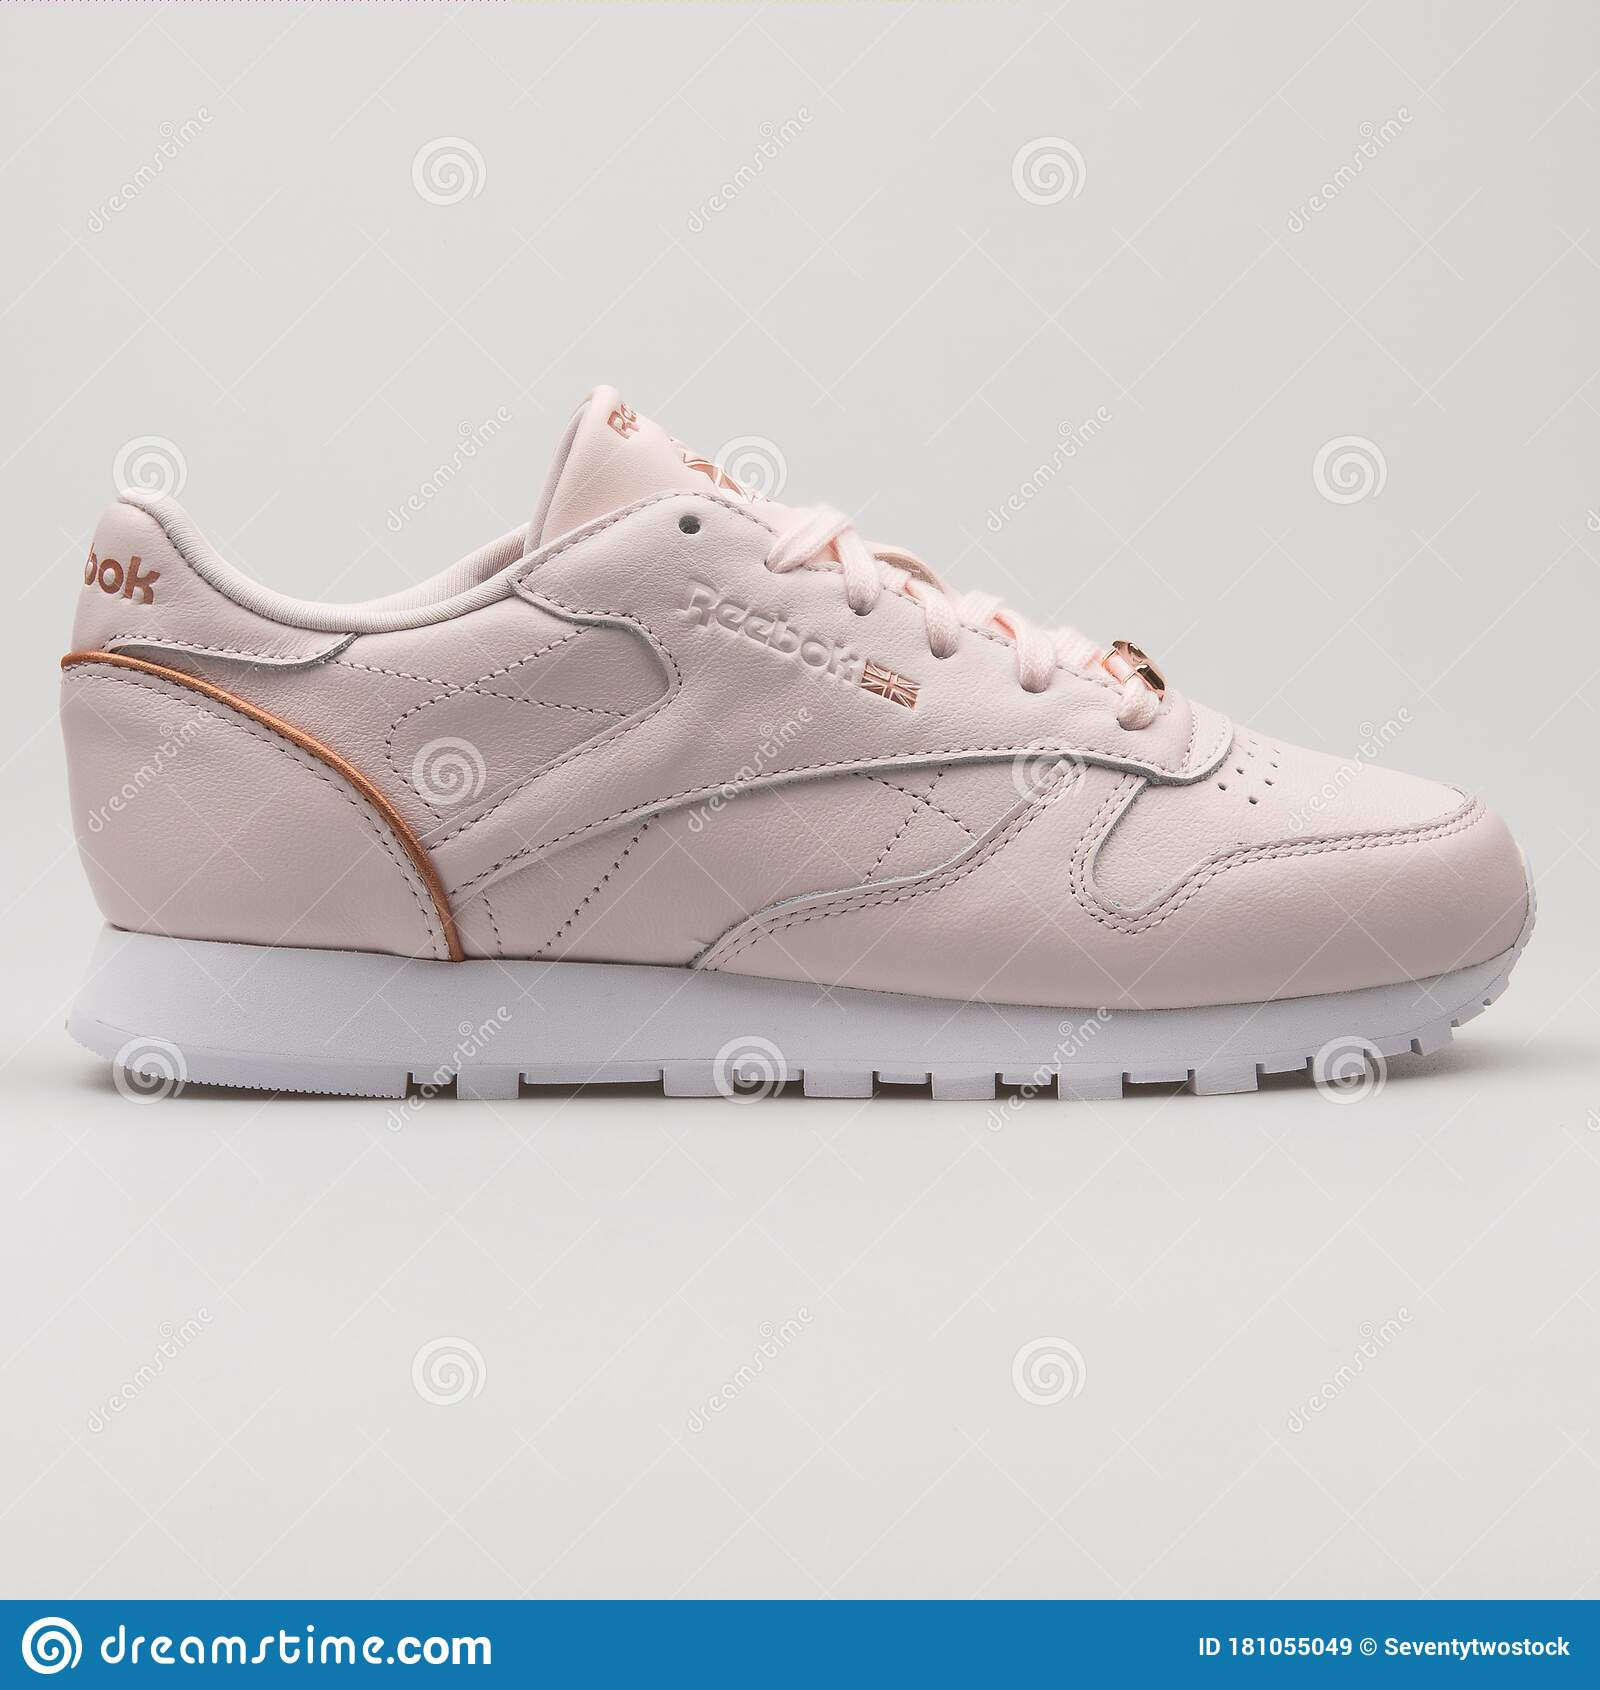 Plano Retirado Silenciosamente  Reebok Classic Leather HW Pink And Rose Gold Sneaker Editorial Stock Image  - Image of leather, equipment: 181055049